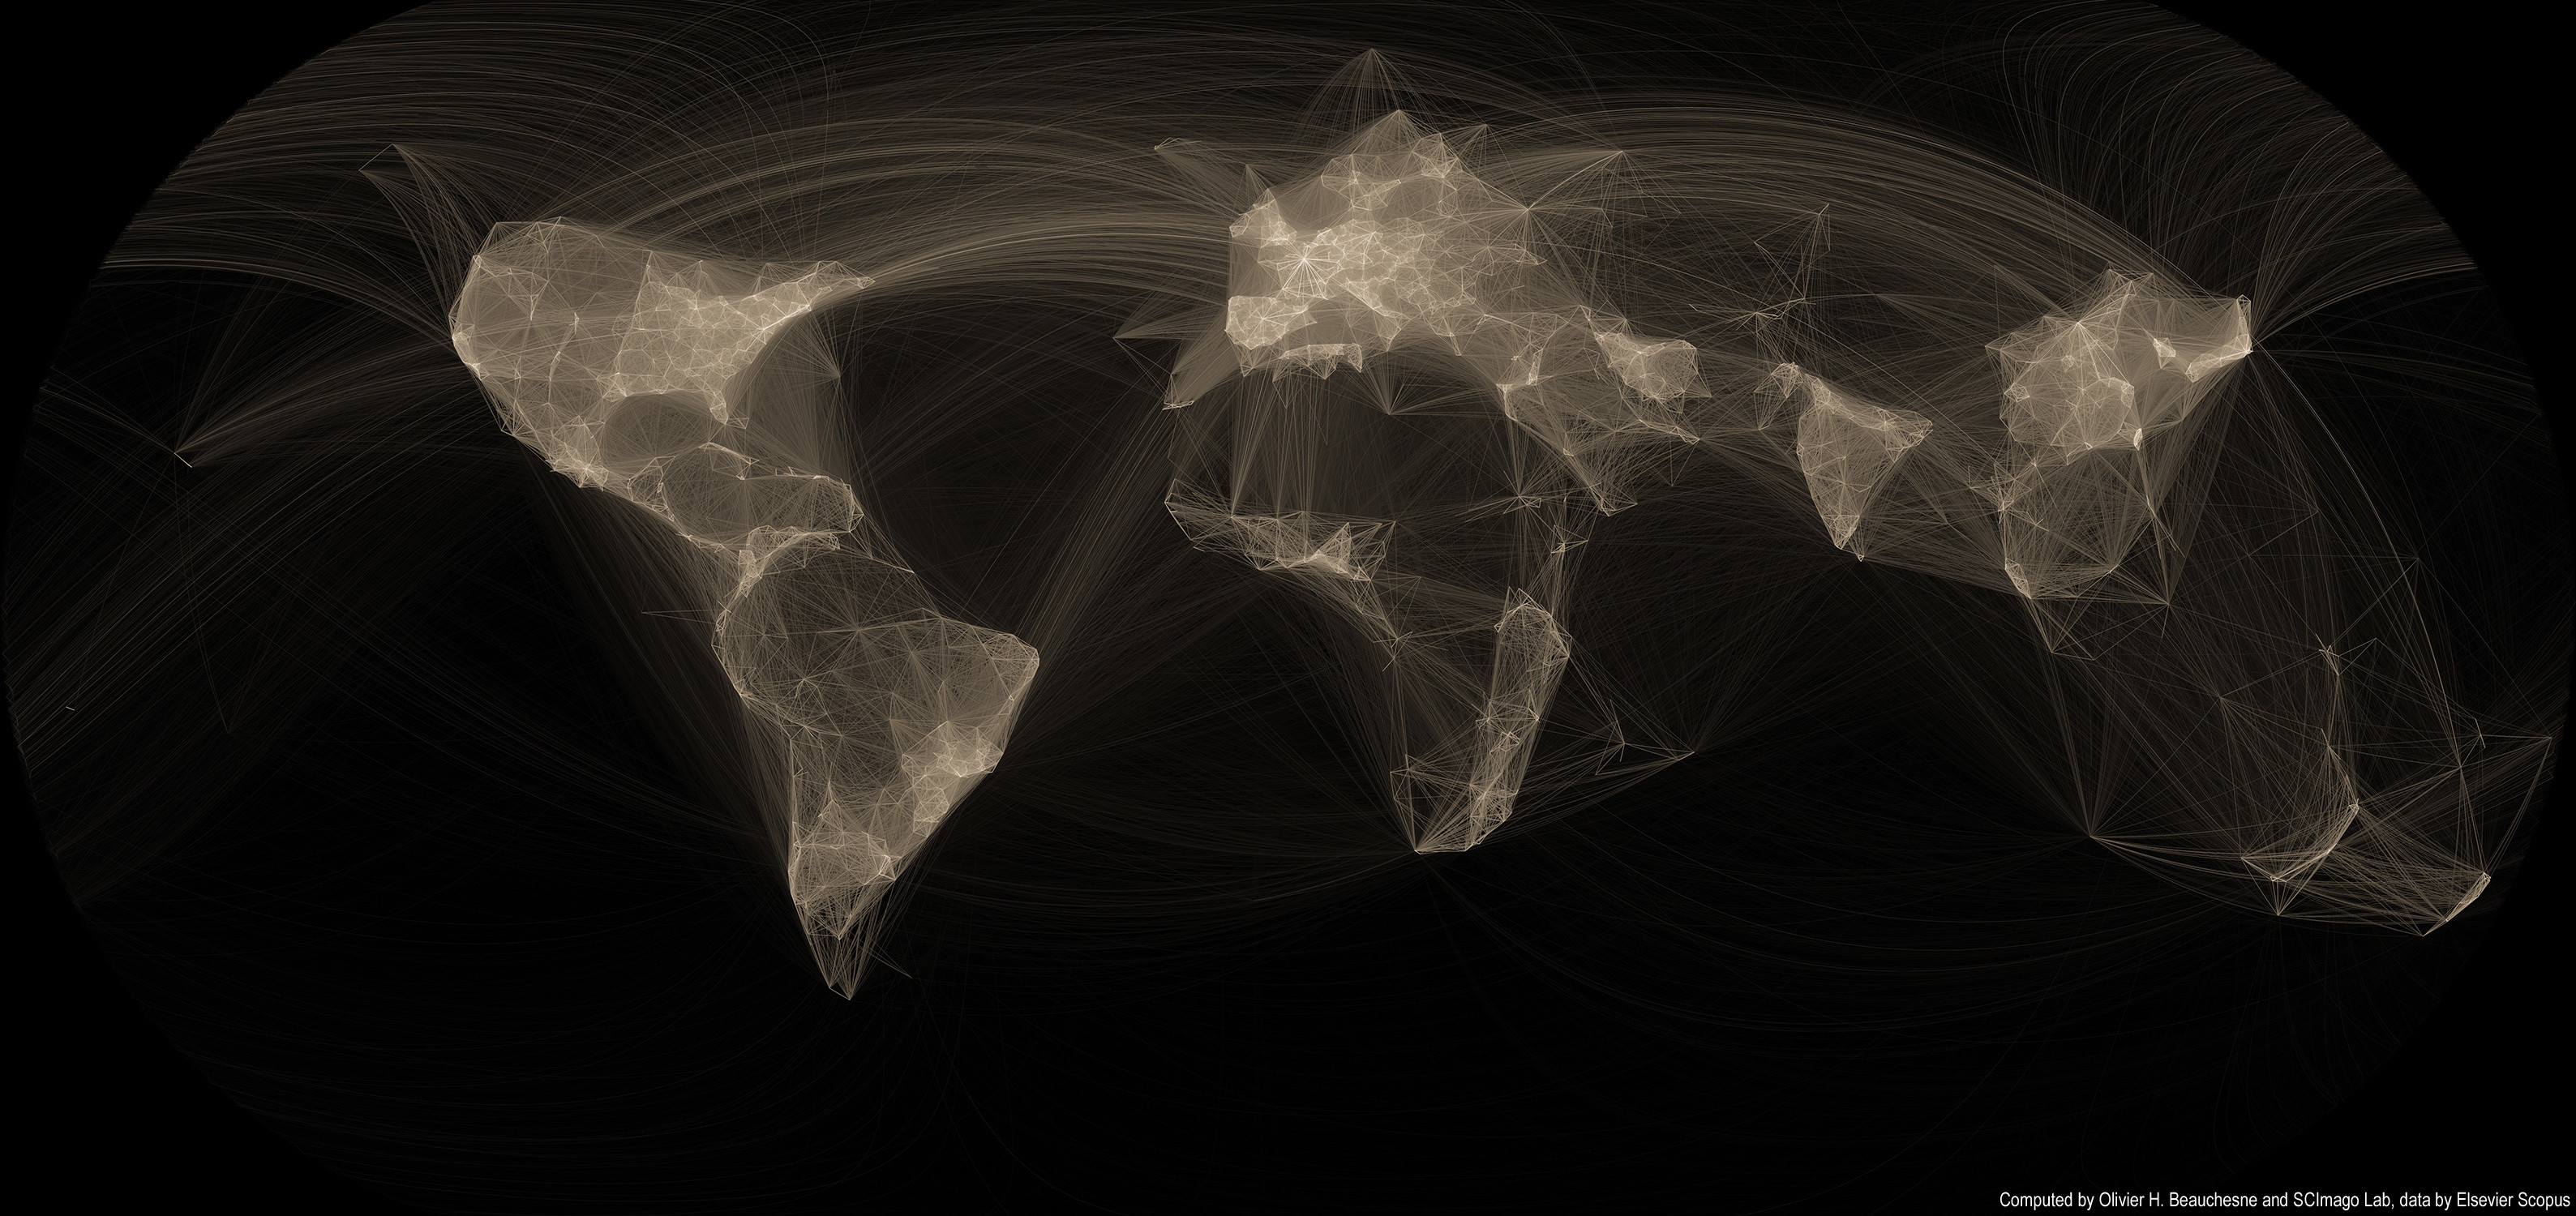 Joining the dots: A map of global scientific collaborations